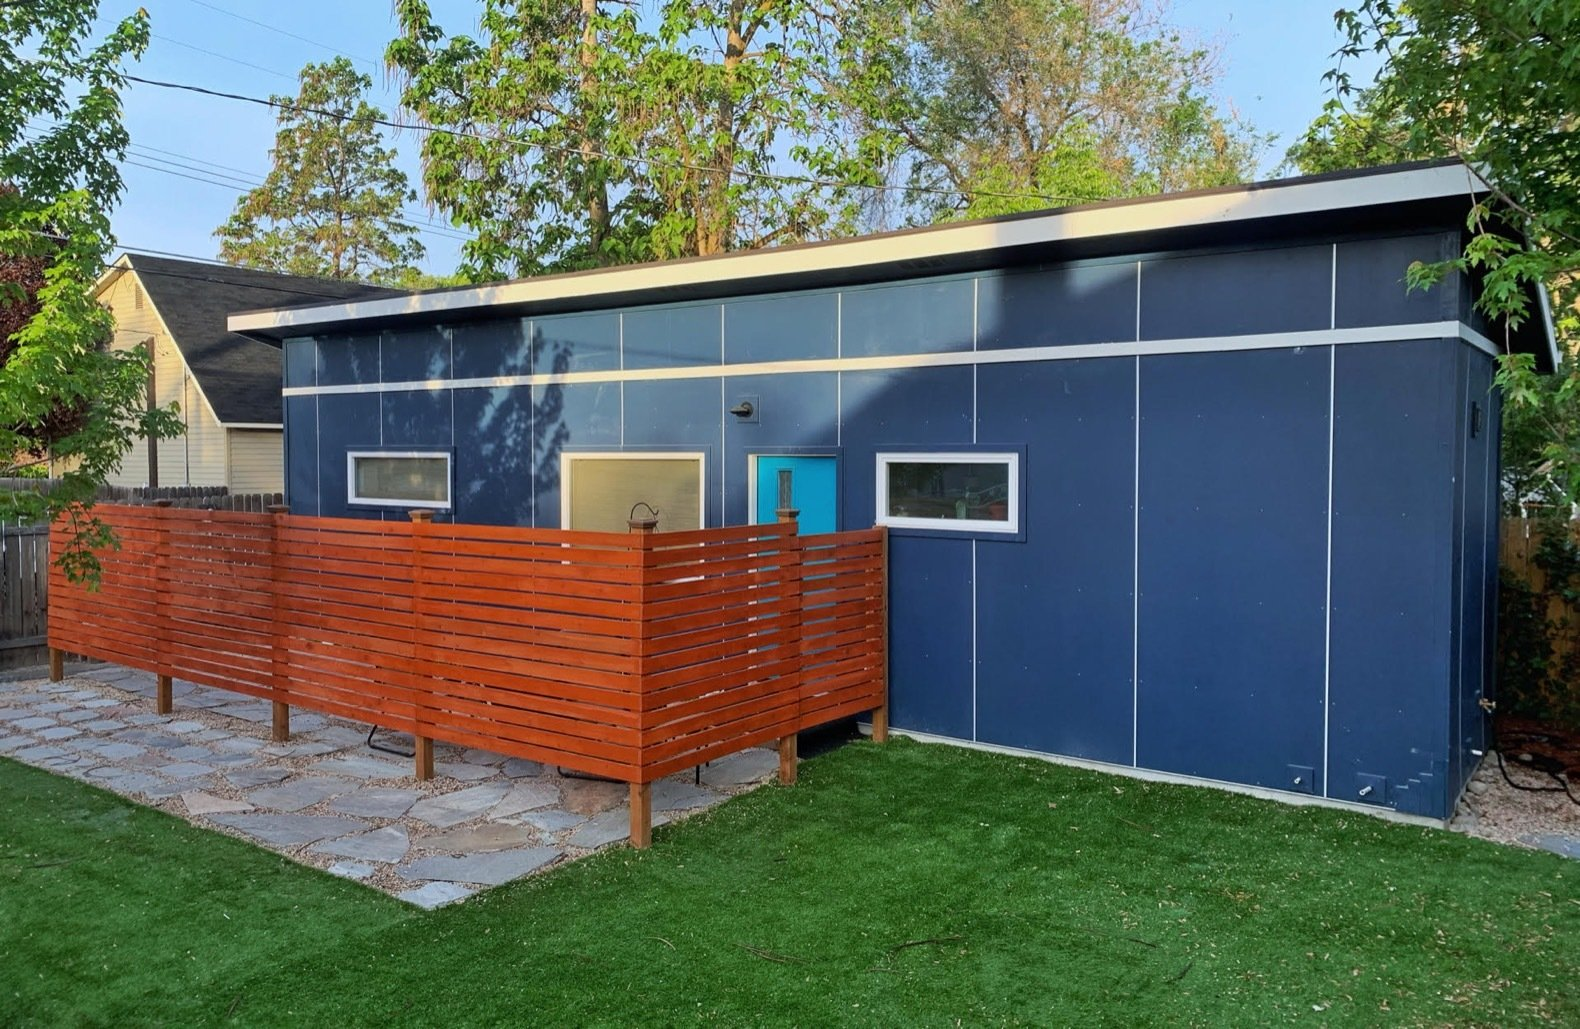 indieDwell's shipping container home exterior